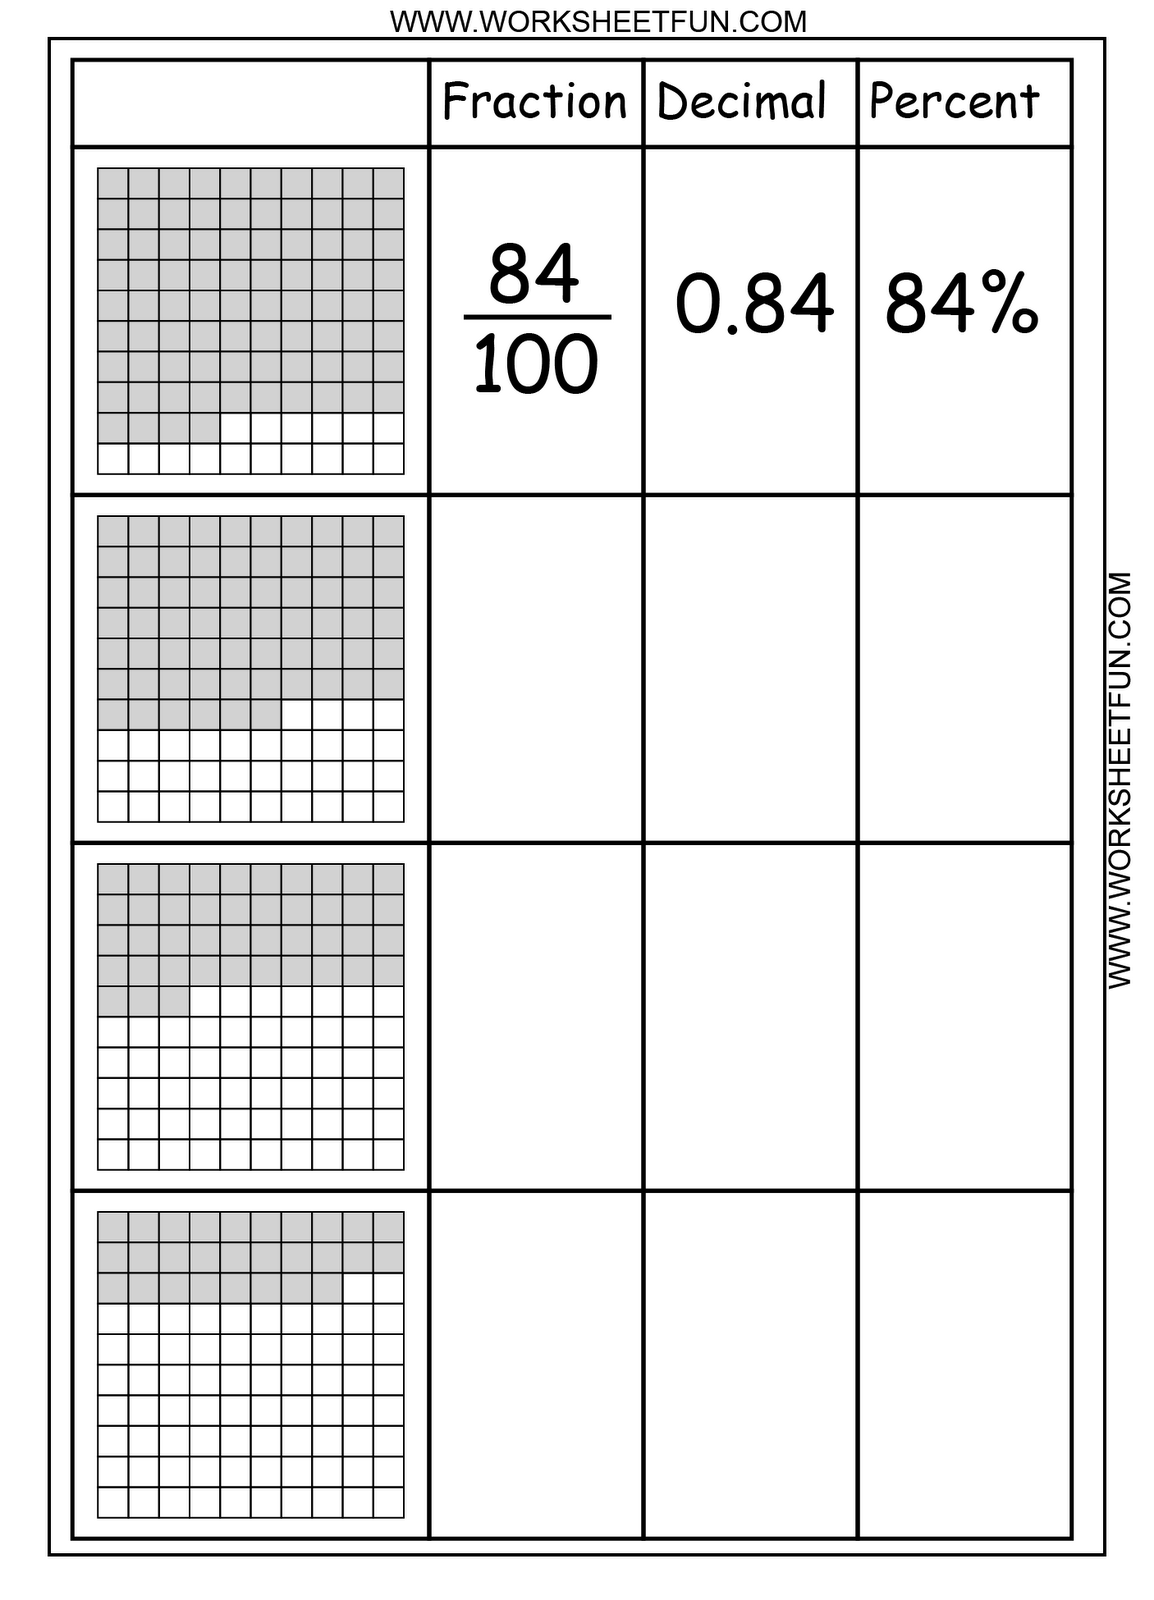 math worksheet : 1000 images about fractions decimals percents on pinterest  : Fraction Decimal Percent Worksheet